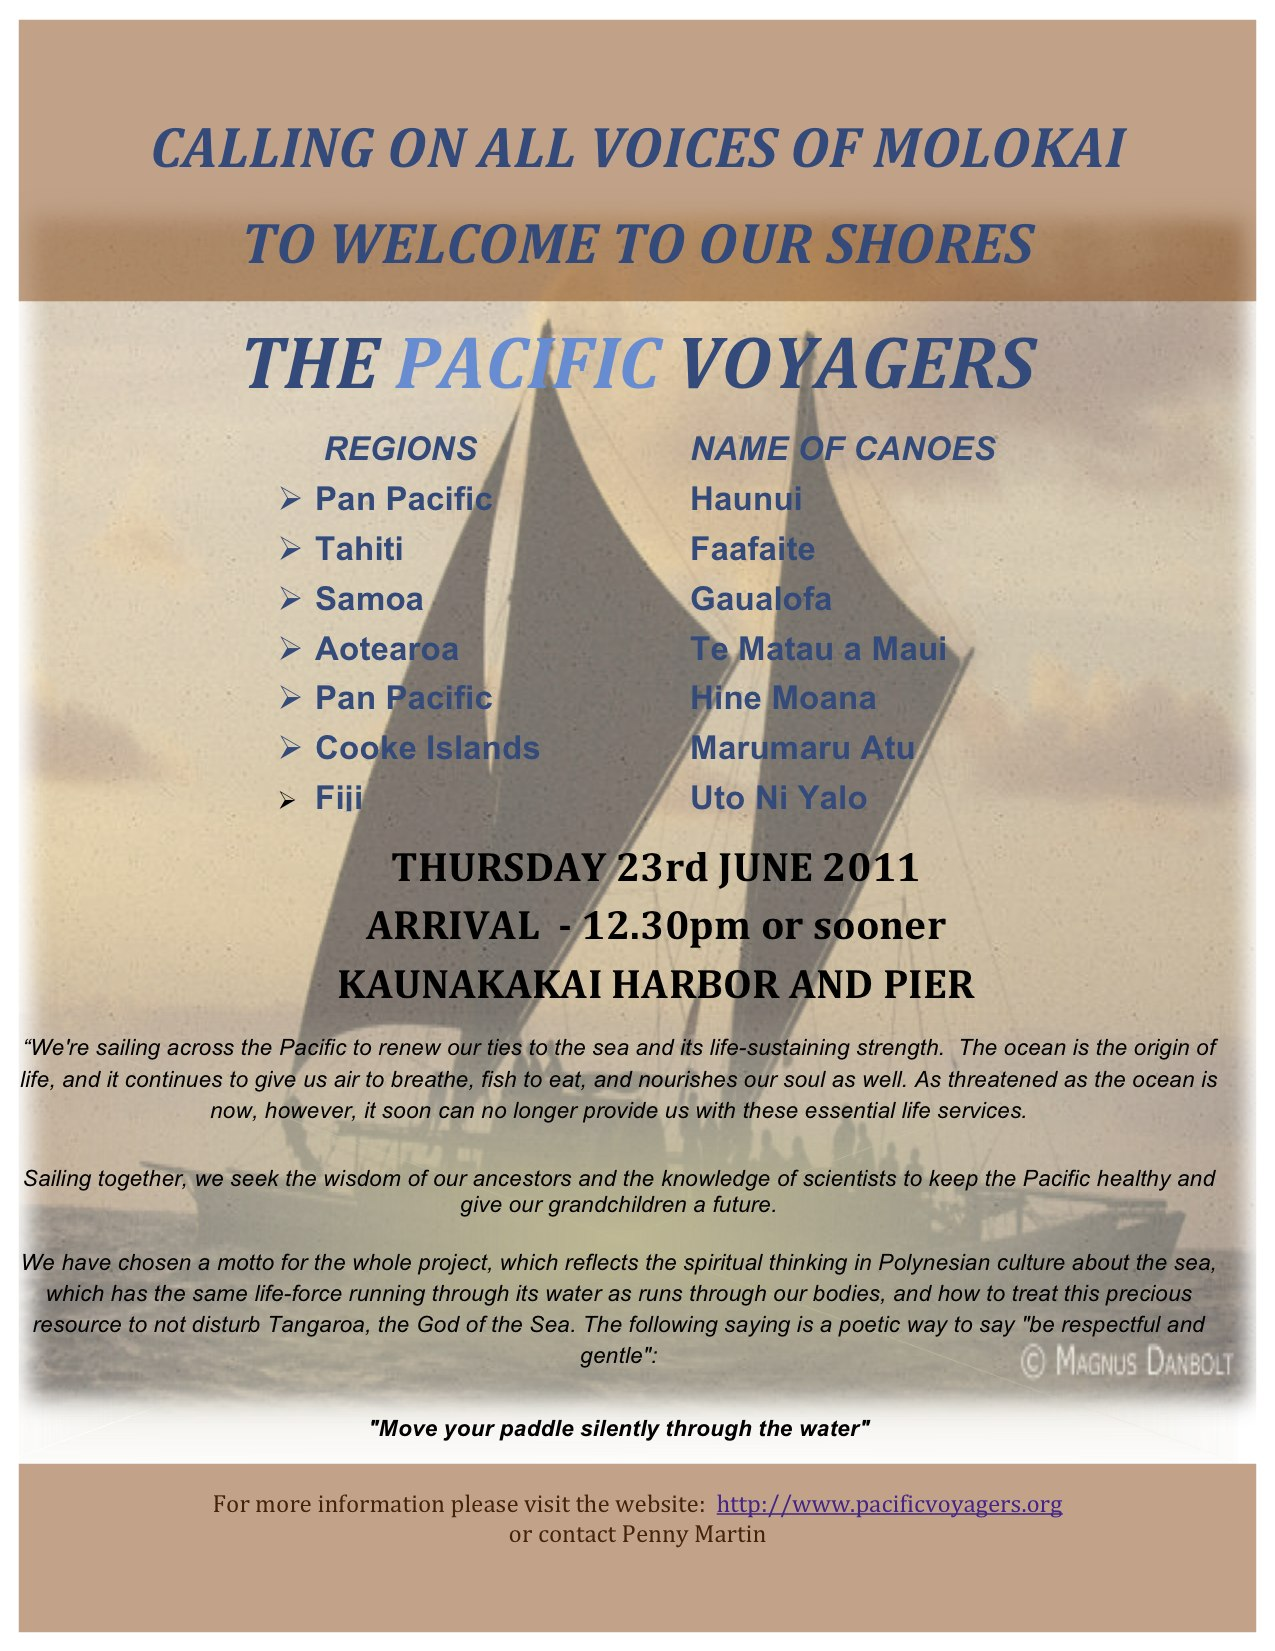 Molokai welcomes the Pacific Voyagers tomorrow